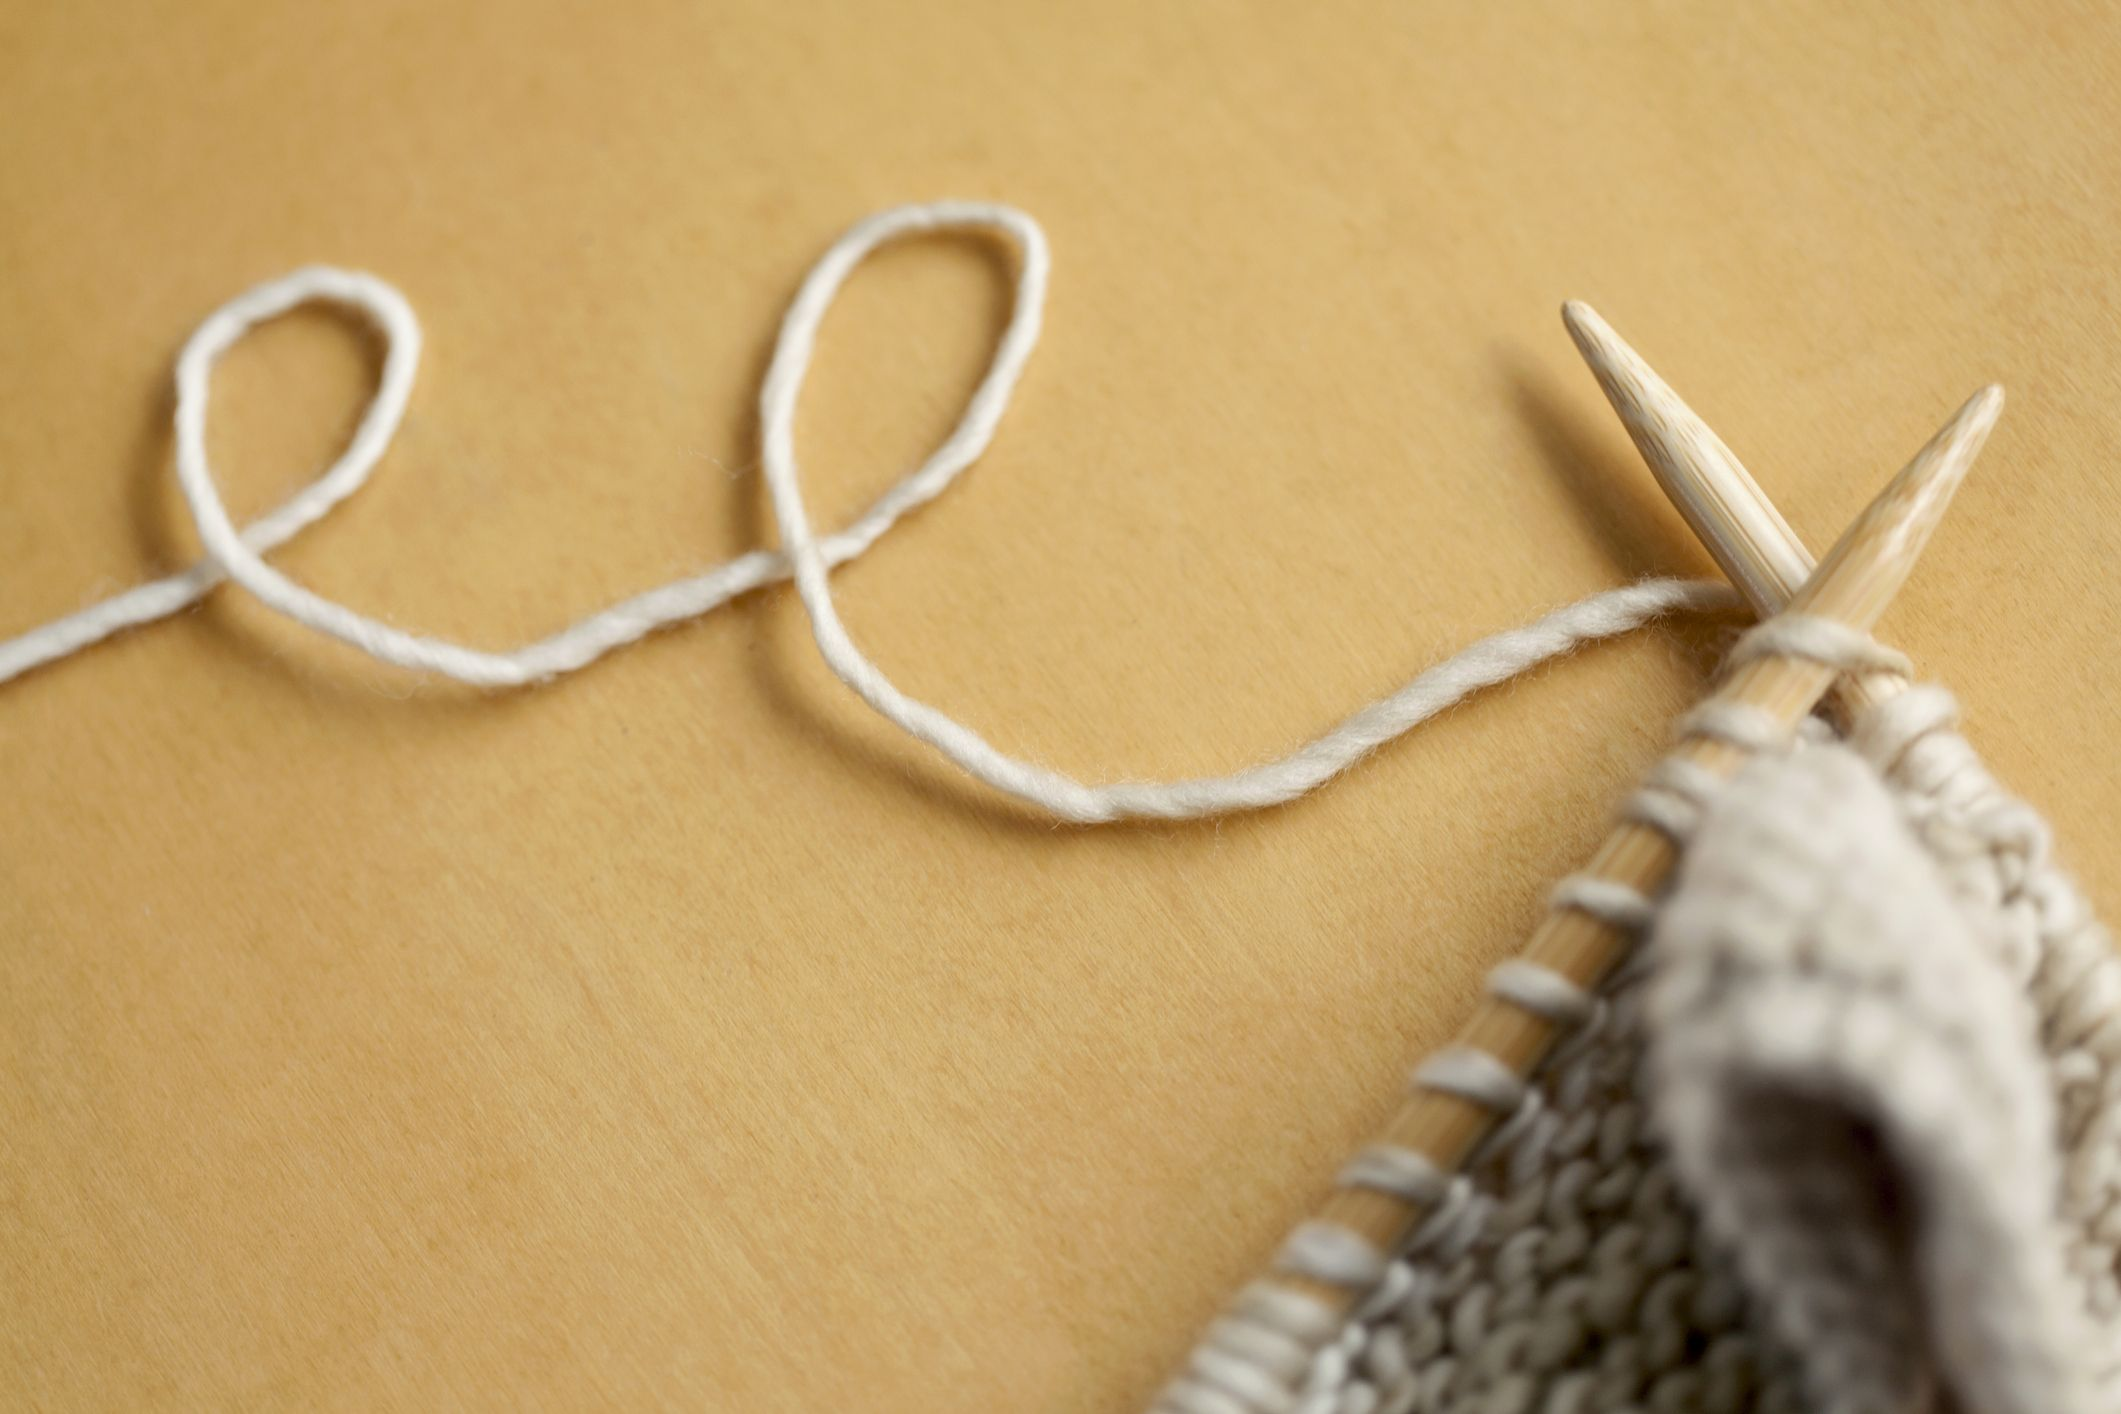 How to knit: A beginner's guide to casting on, casting off and the basic stitches